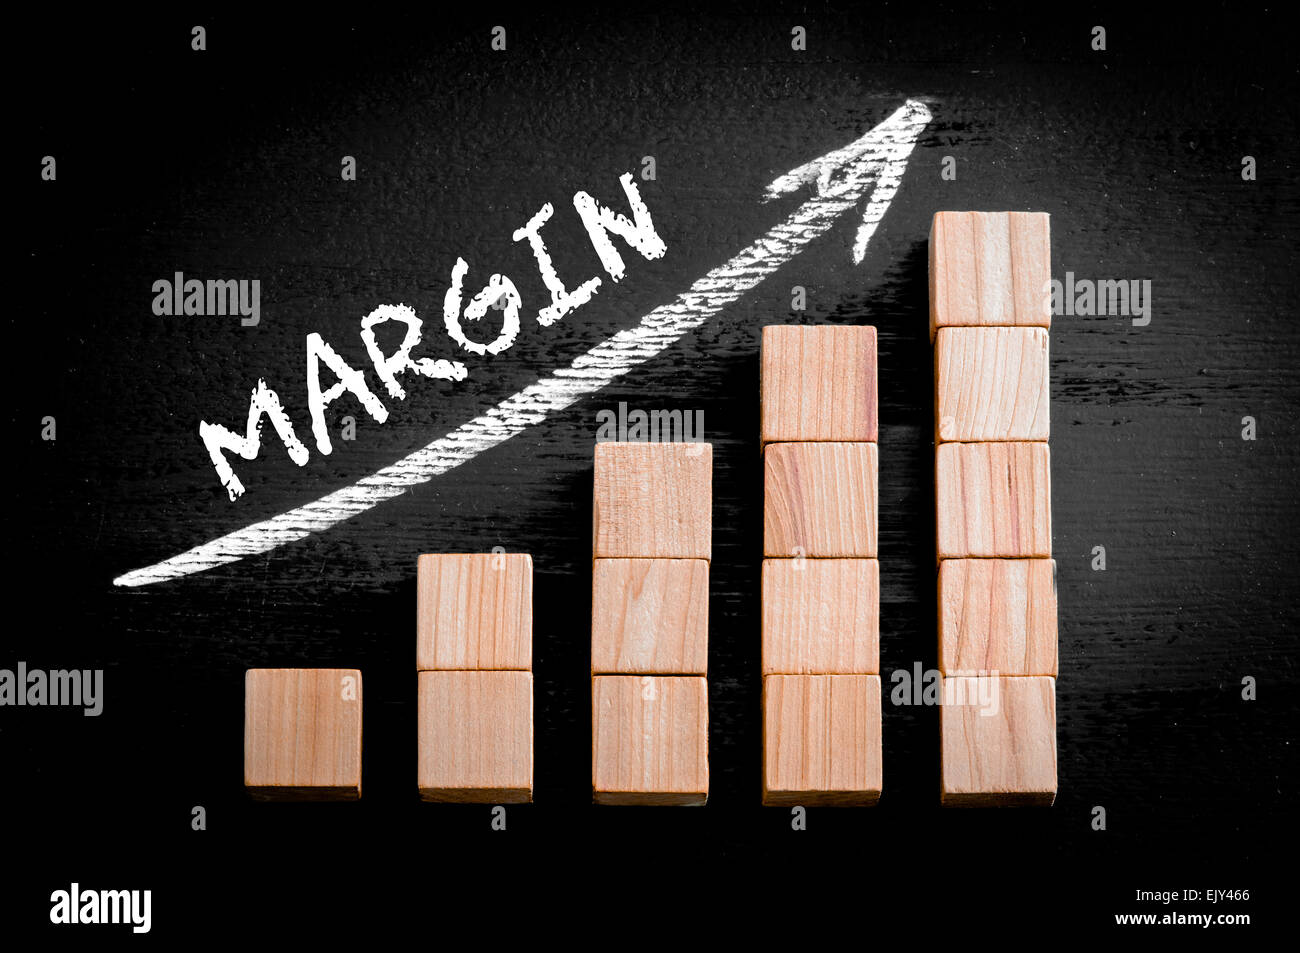 Word Margin on ascending arrow above bar graph of Wooden small cubes isolated on black background. Chalk drawing - Stock Image